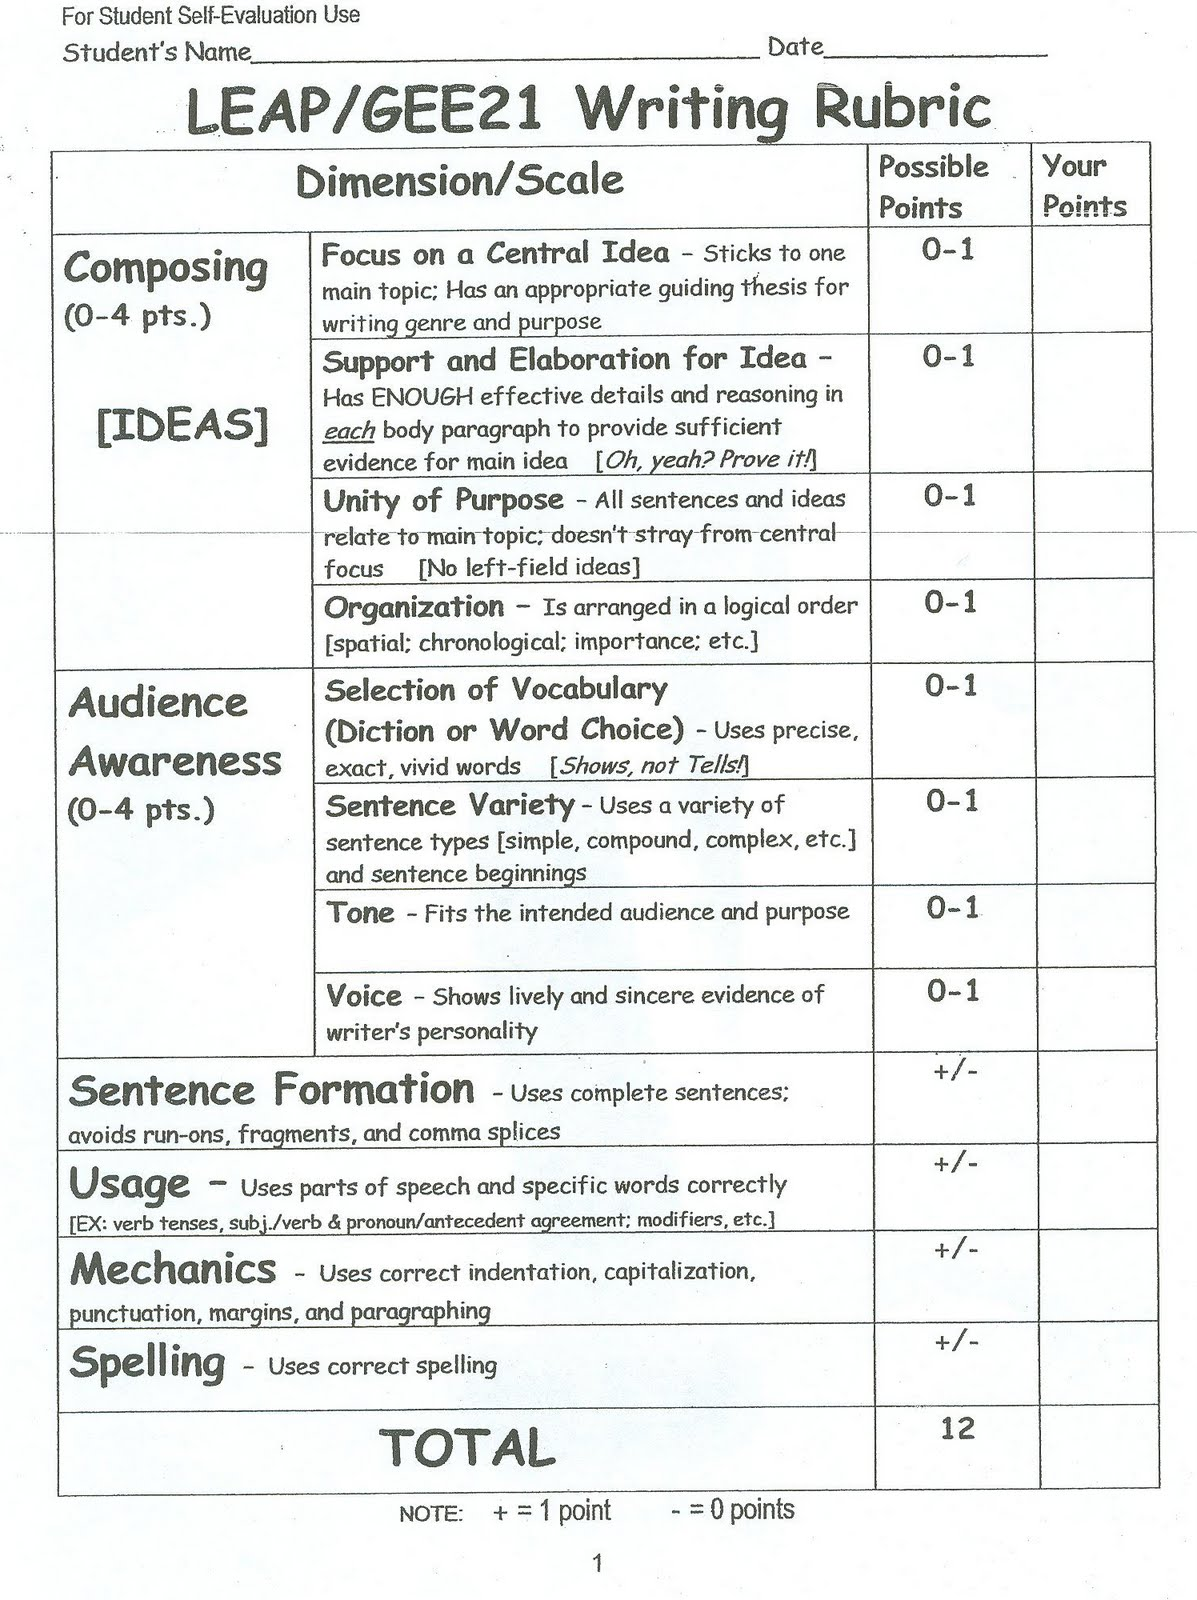 sat scoring rubric for essay